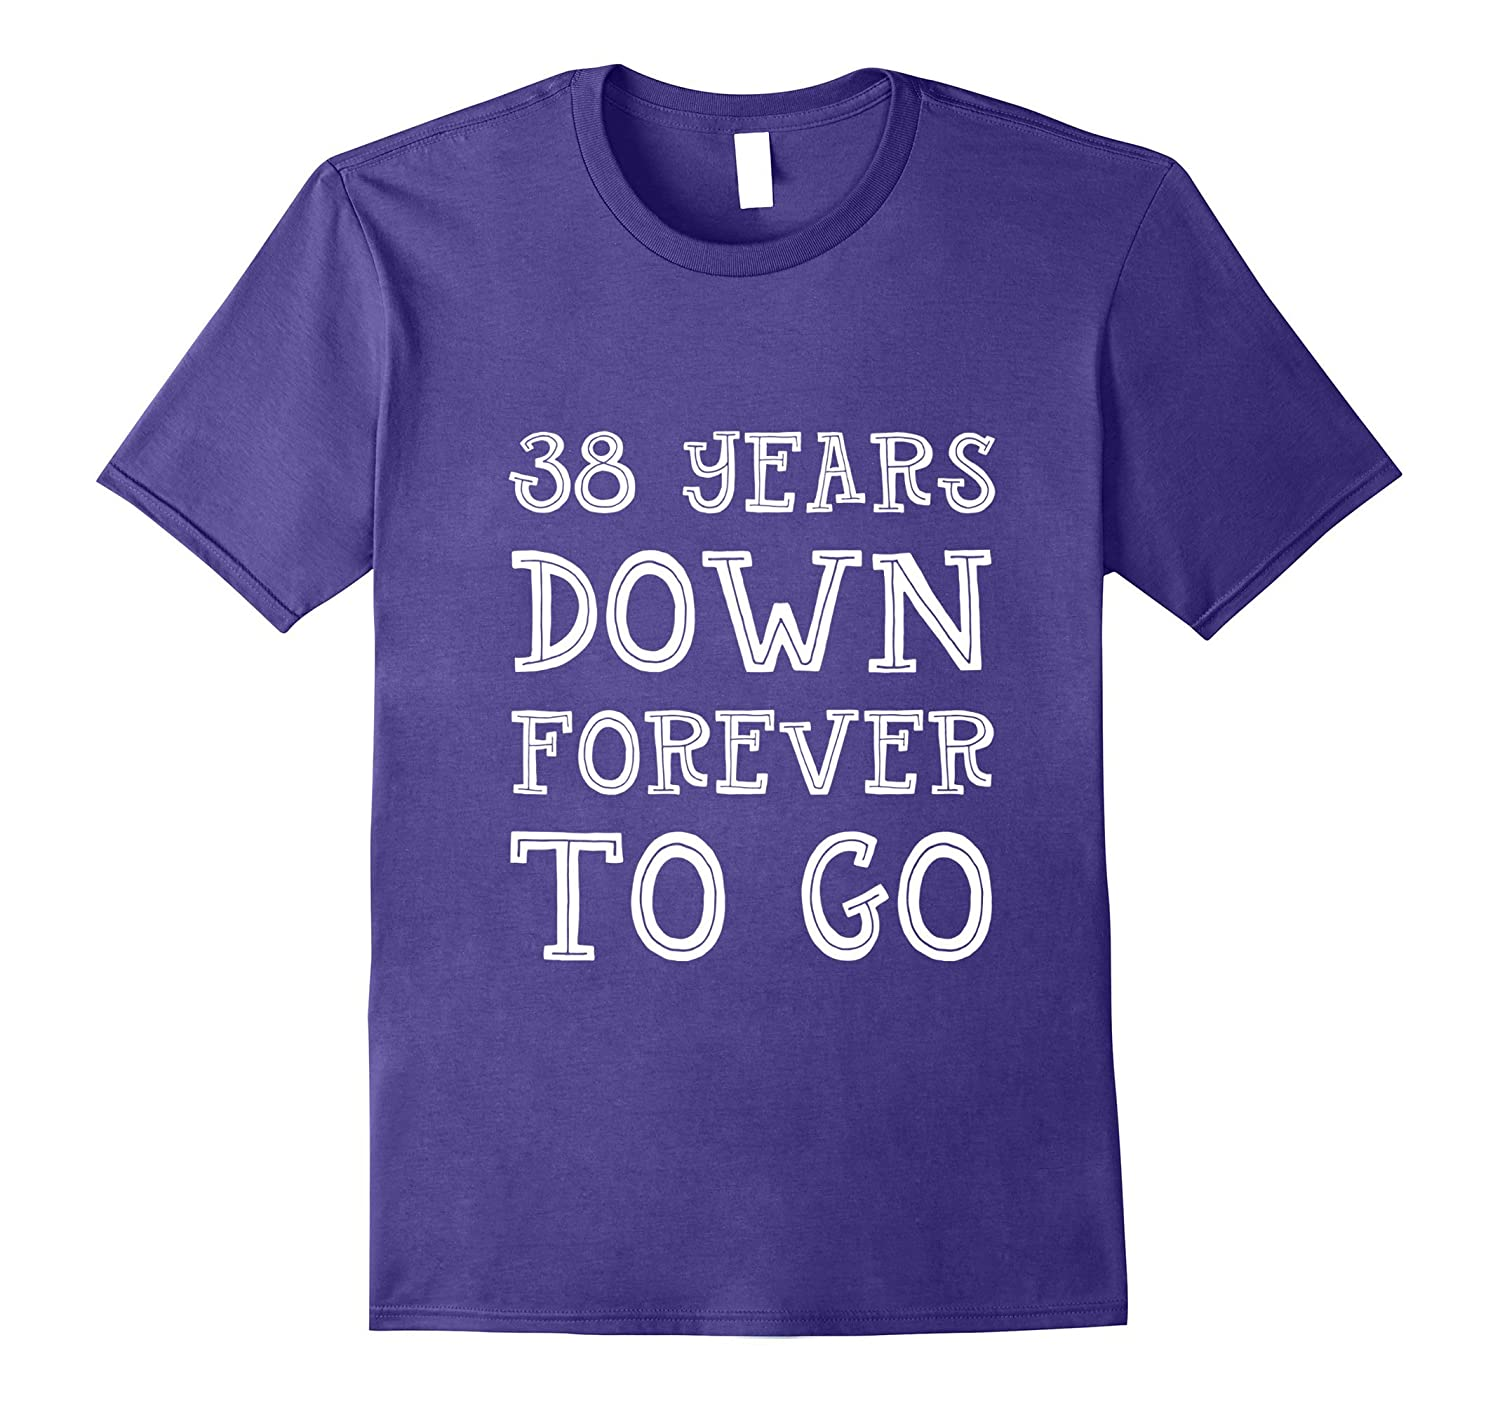 38th Wedding Anniversary Gift Ideas: 38th Wedding Anniversary Gift 38 Years Down Forever To Go